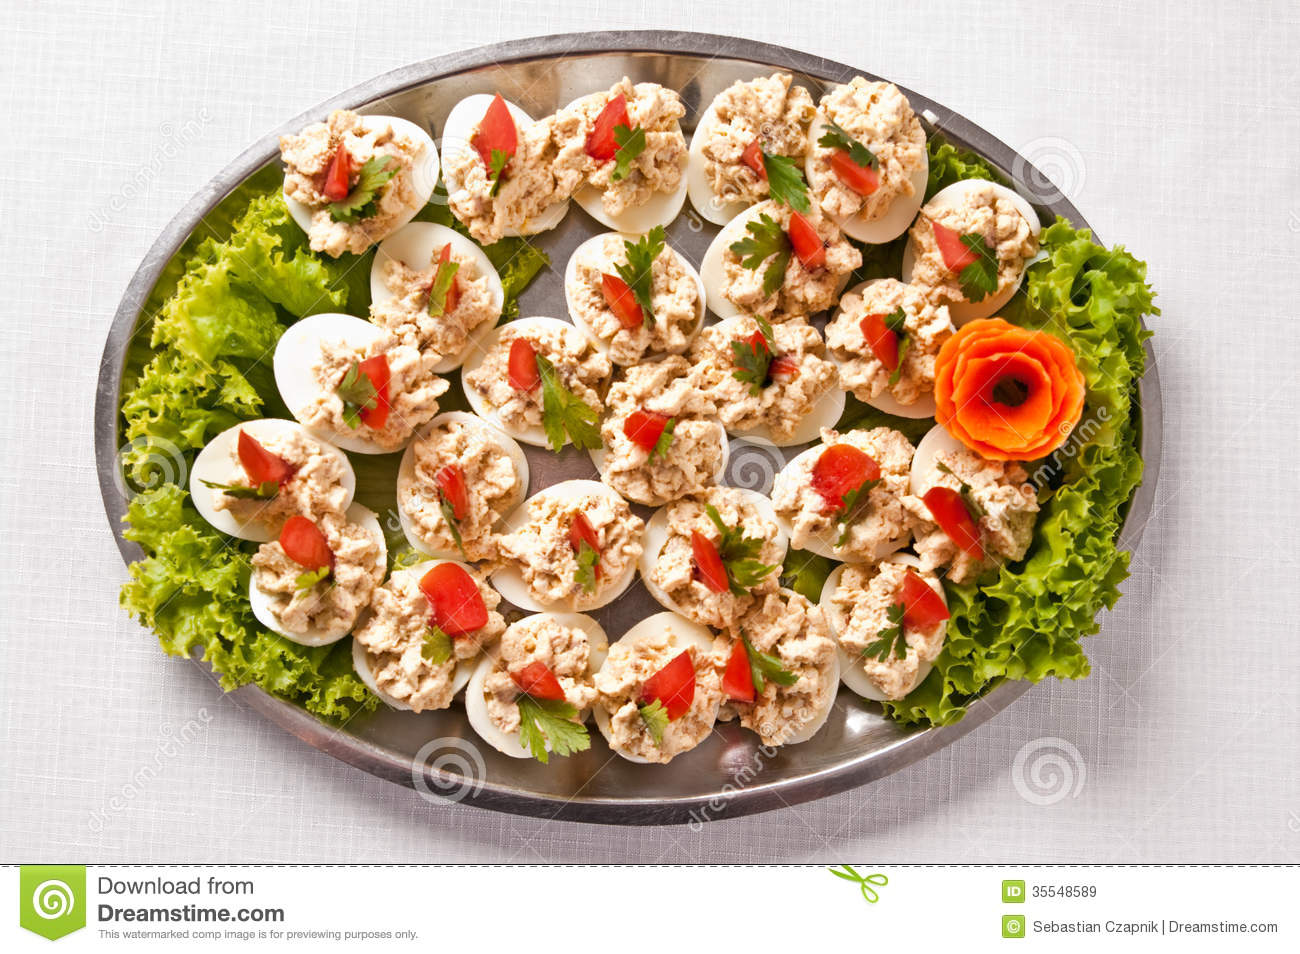 Boiled eggs with fish cream topping